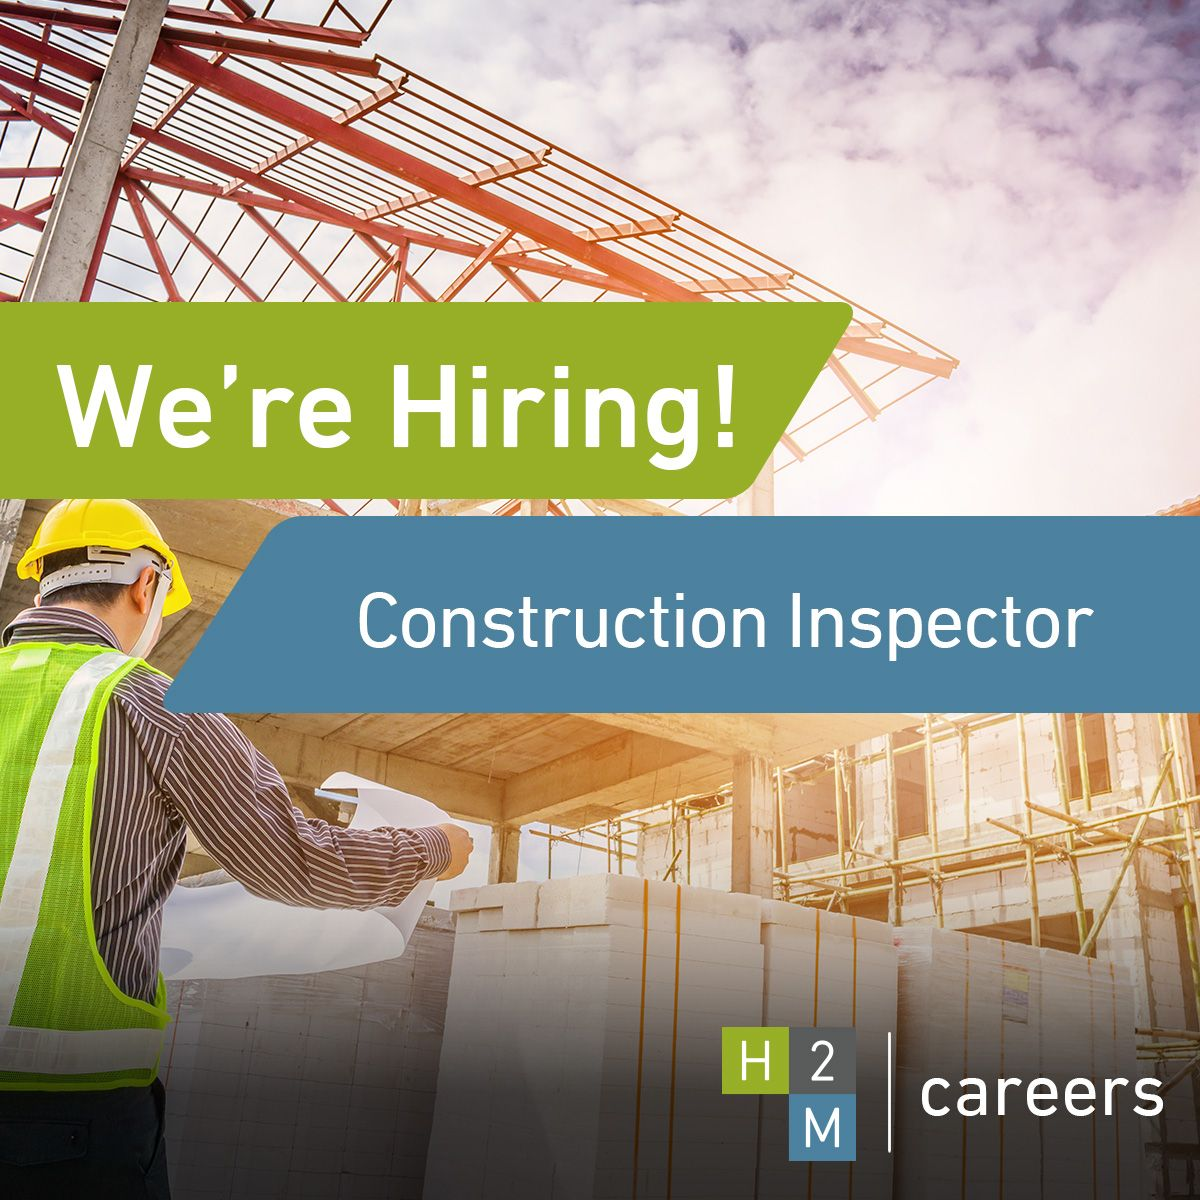 We Re Hiring A Construction Inspector In Our Parsippany New Jersey Office Job Description The Ideal Candidate Wi Career Career Opportunities Job Description